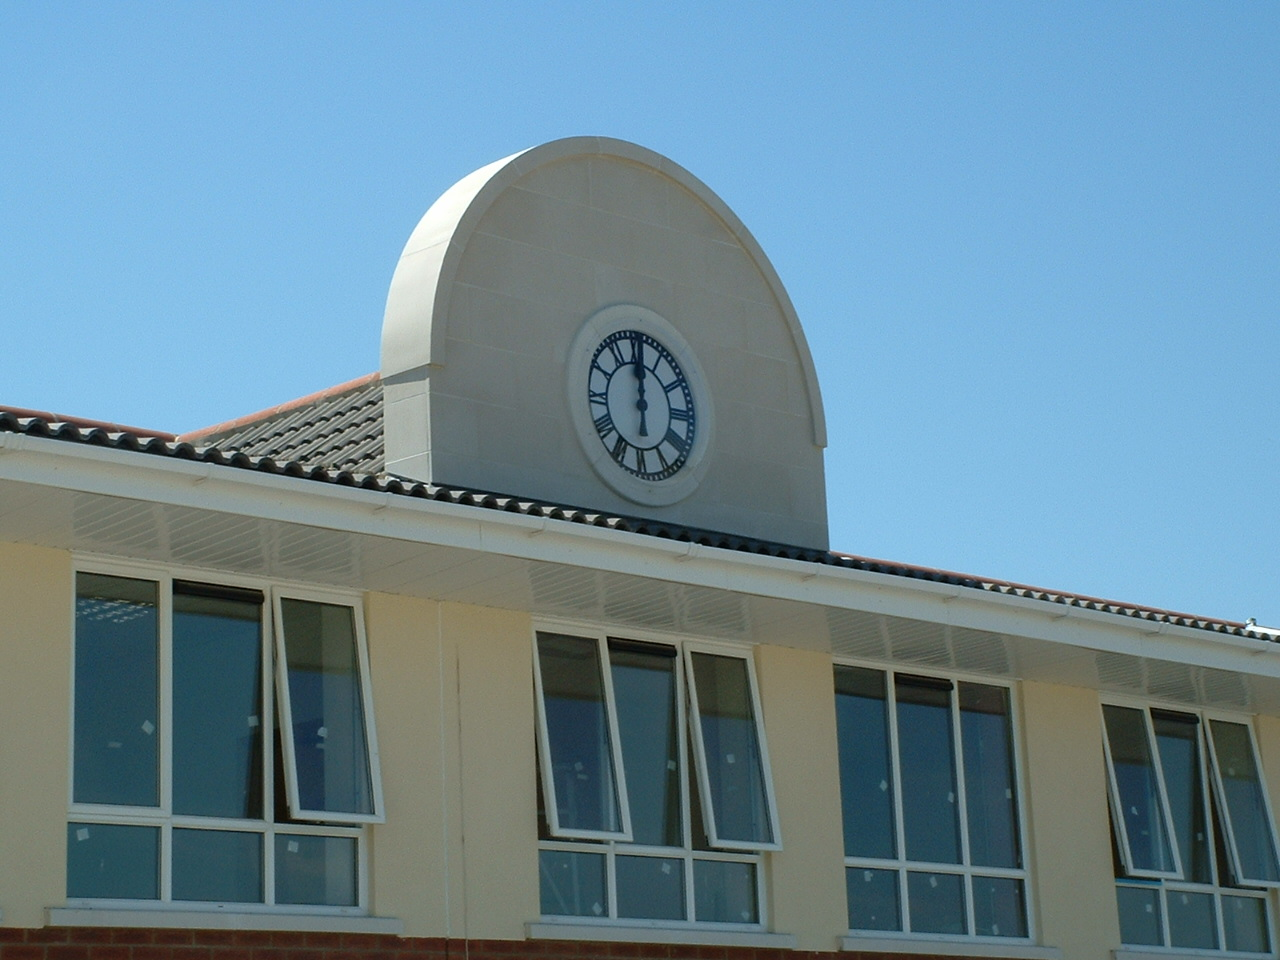 Clock on School